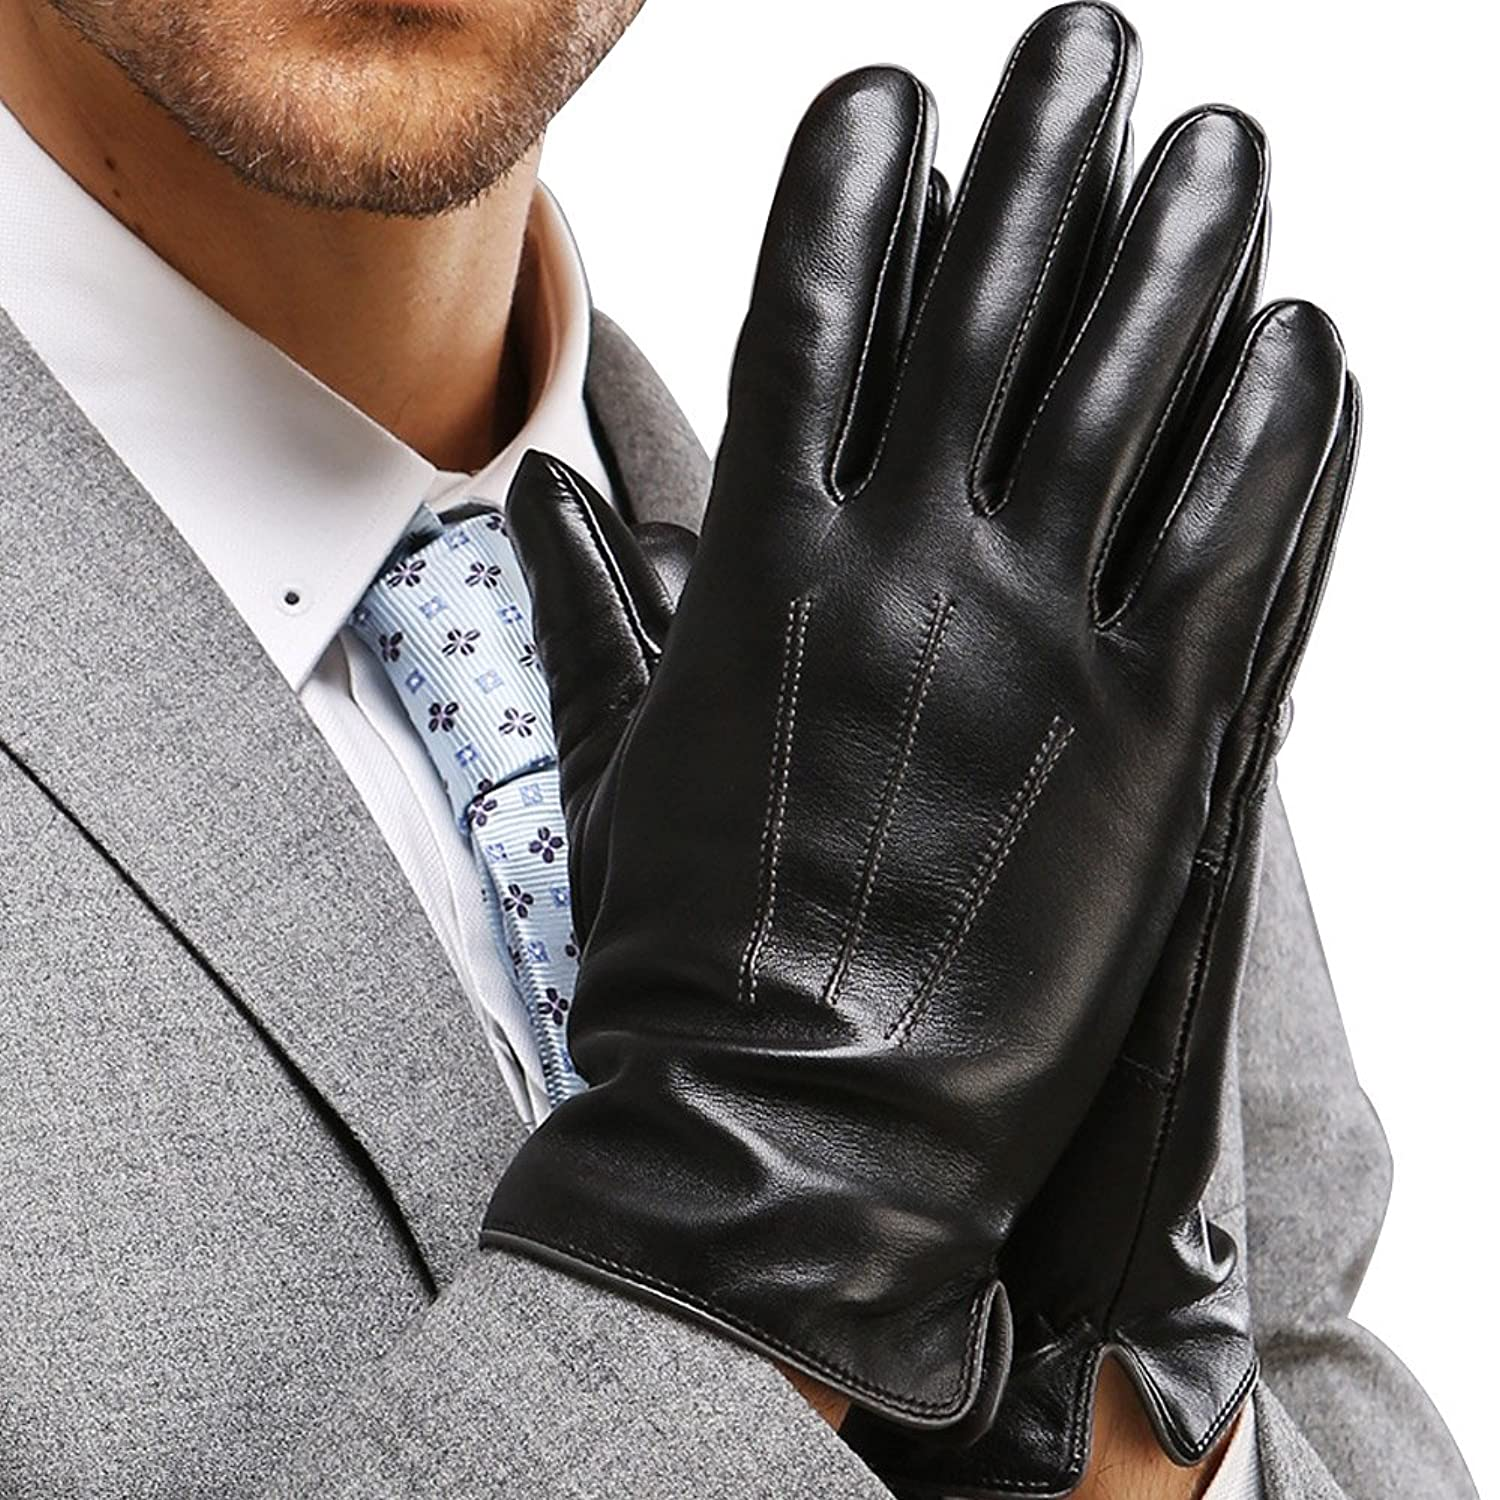 Brown vs black leather gloves - Harrms Best Touchscreen Nappa Genuine Leather Gloves For Men S Texting Driving Cashmere Lining